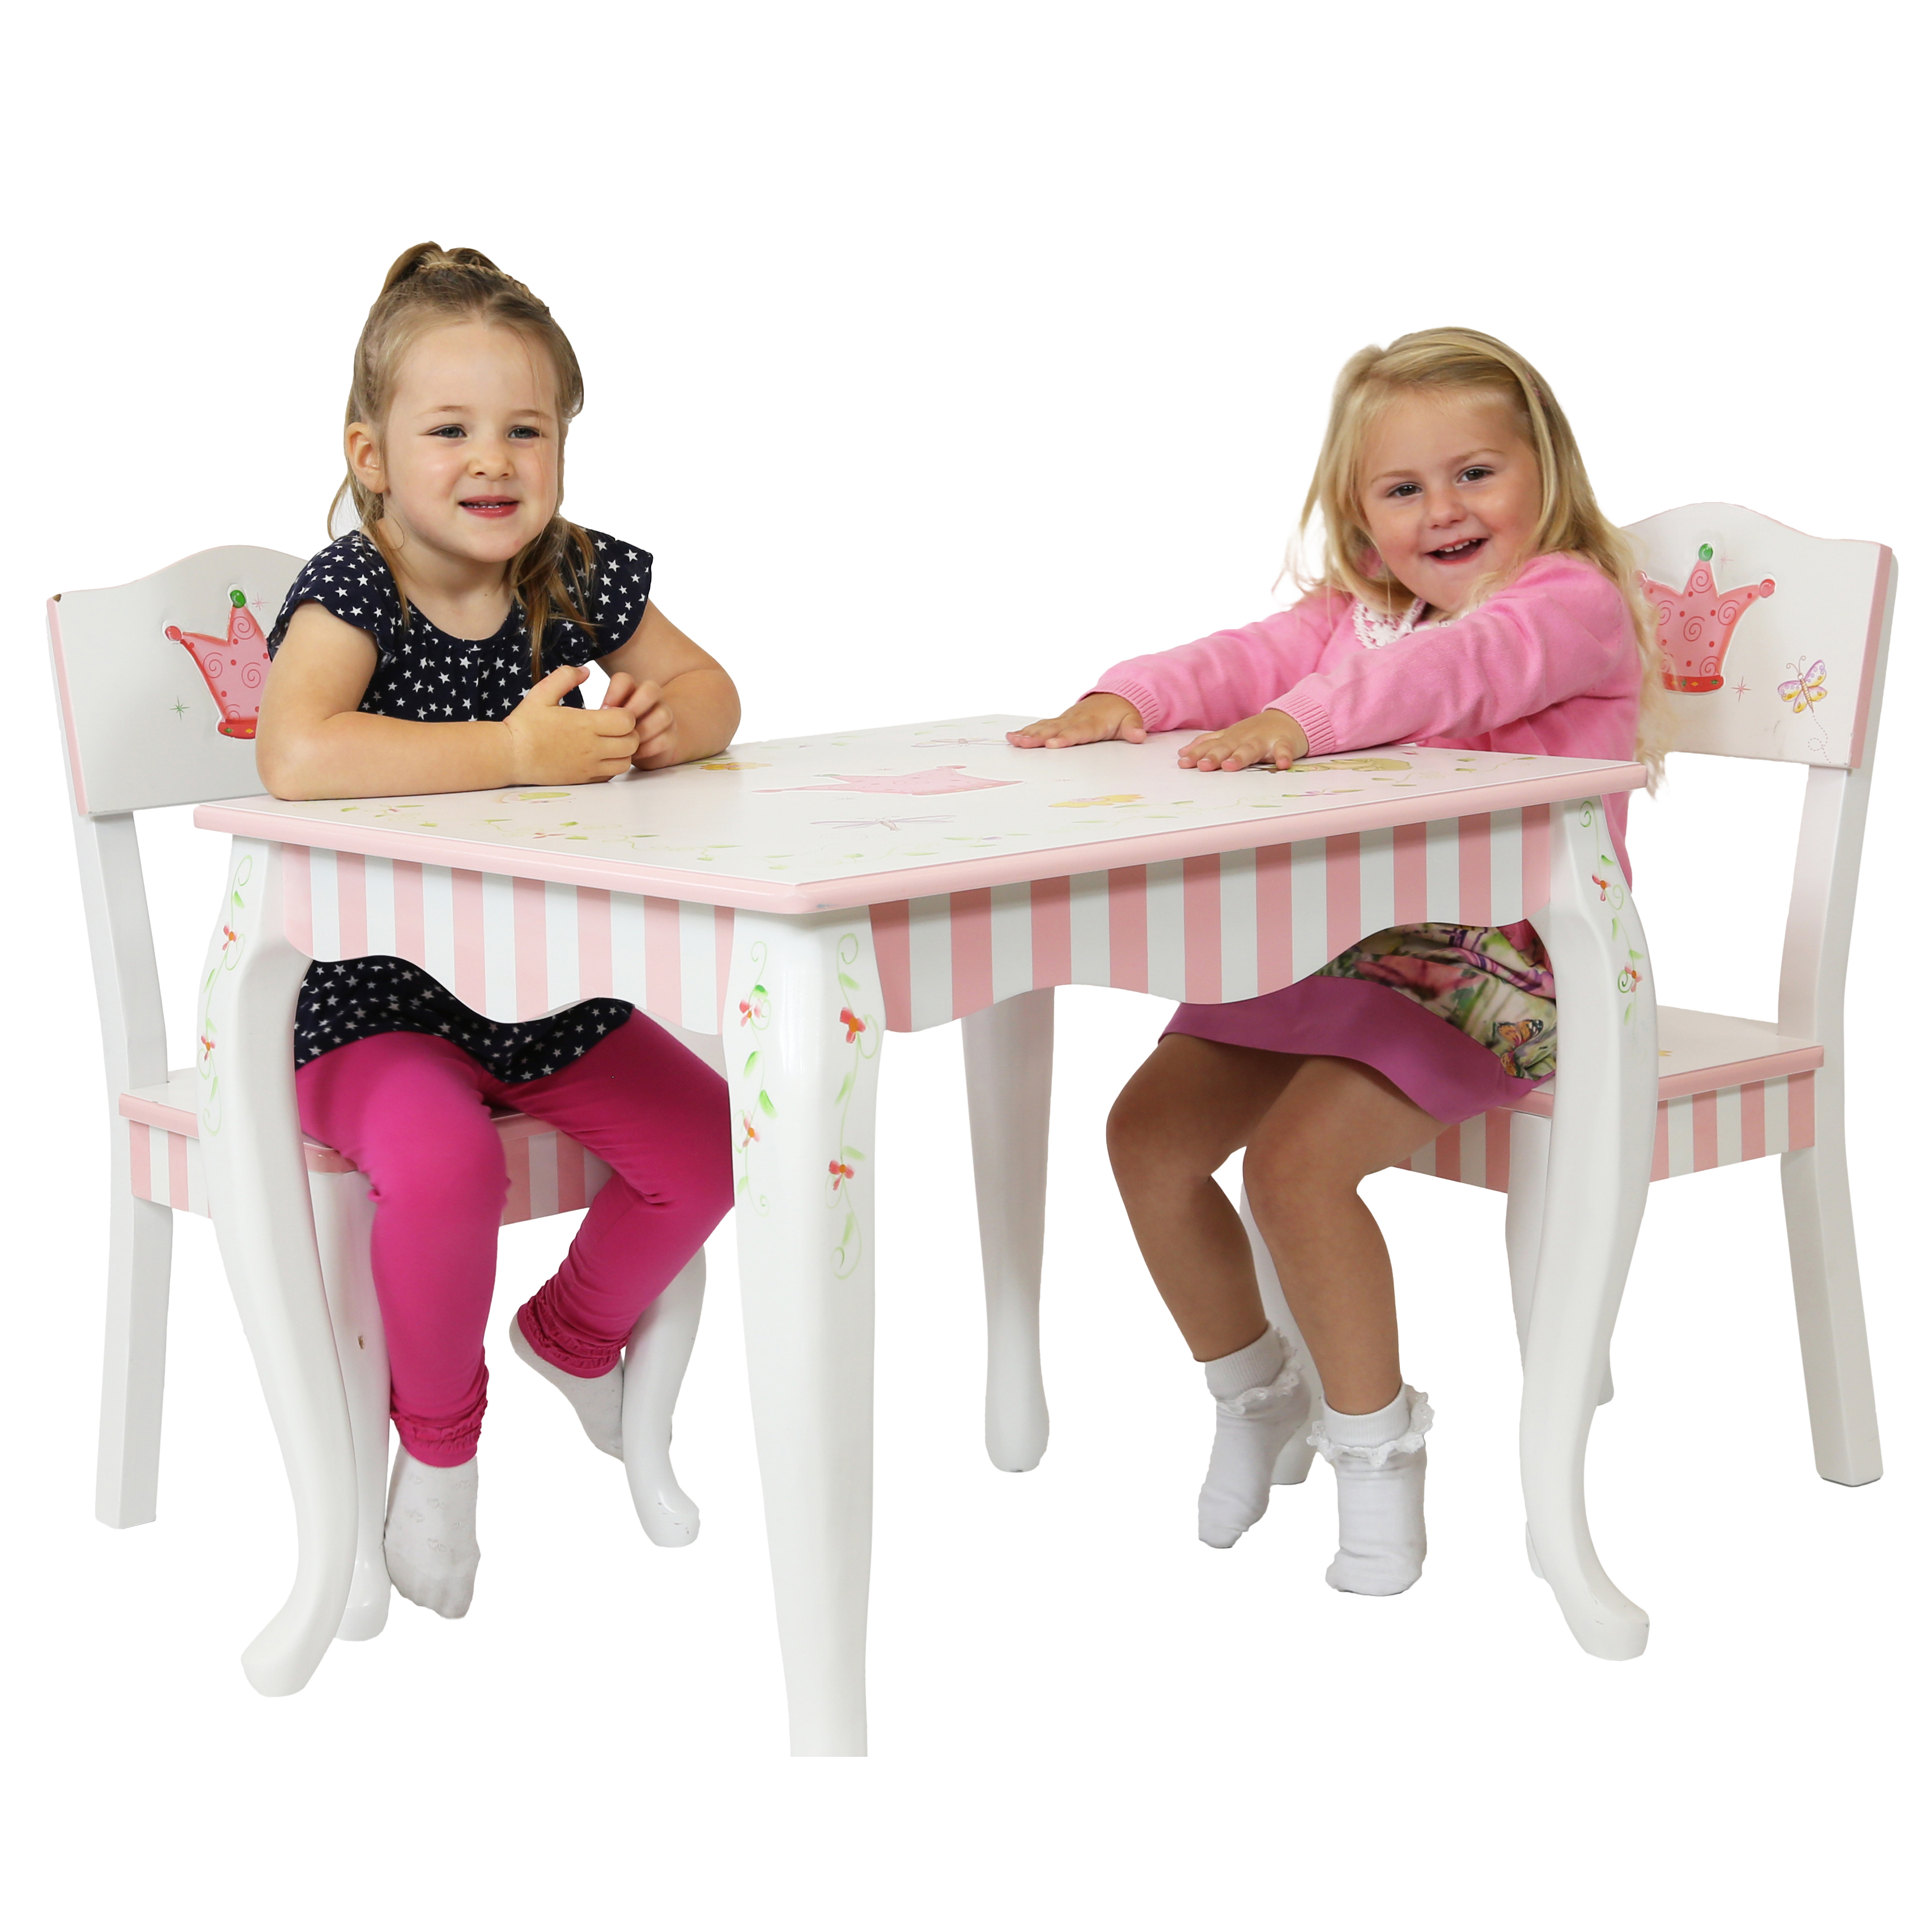 Princess Frog Table Chairs By Teamson Fantasy Fields Flair Original